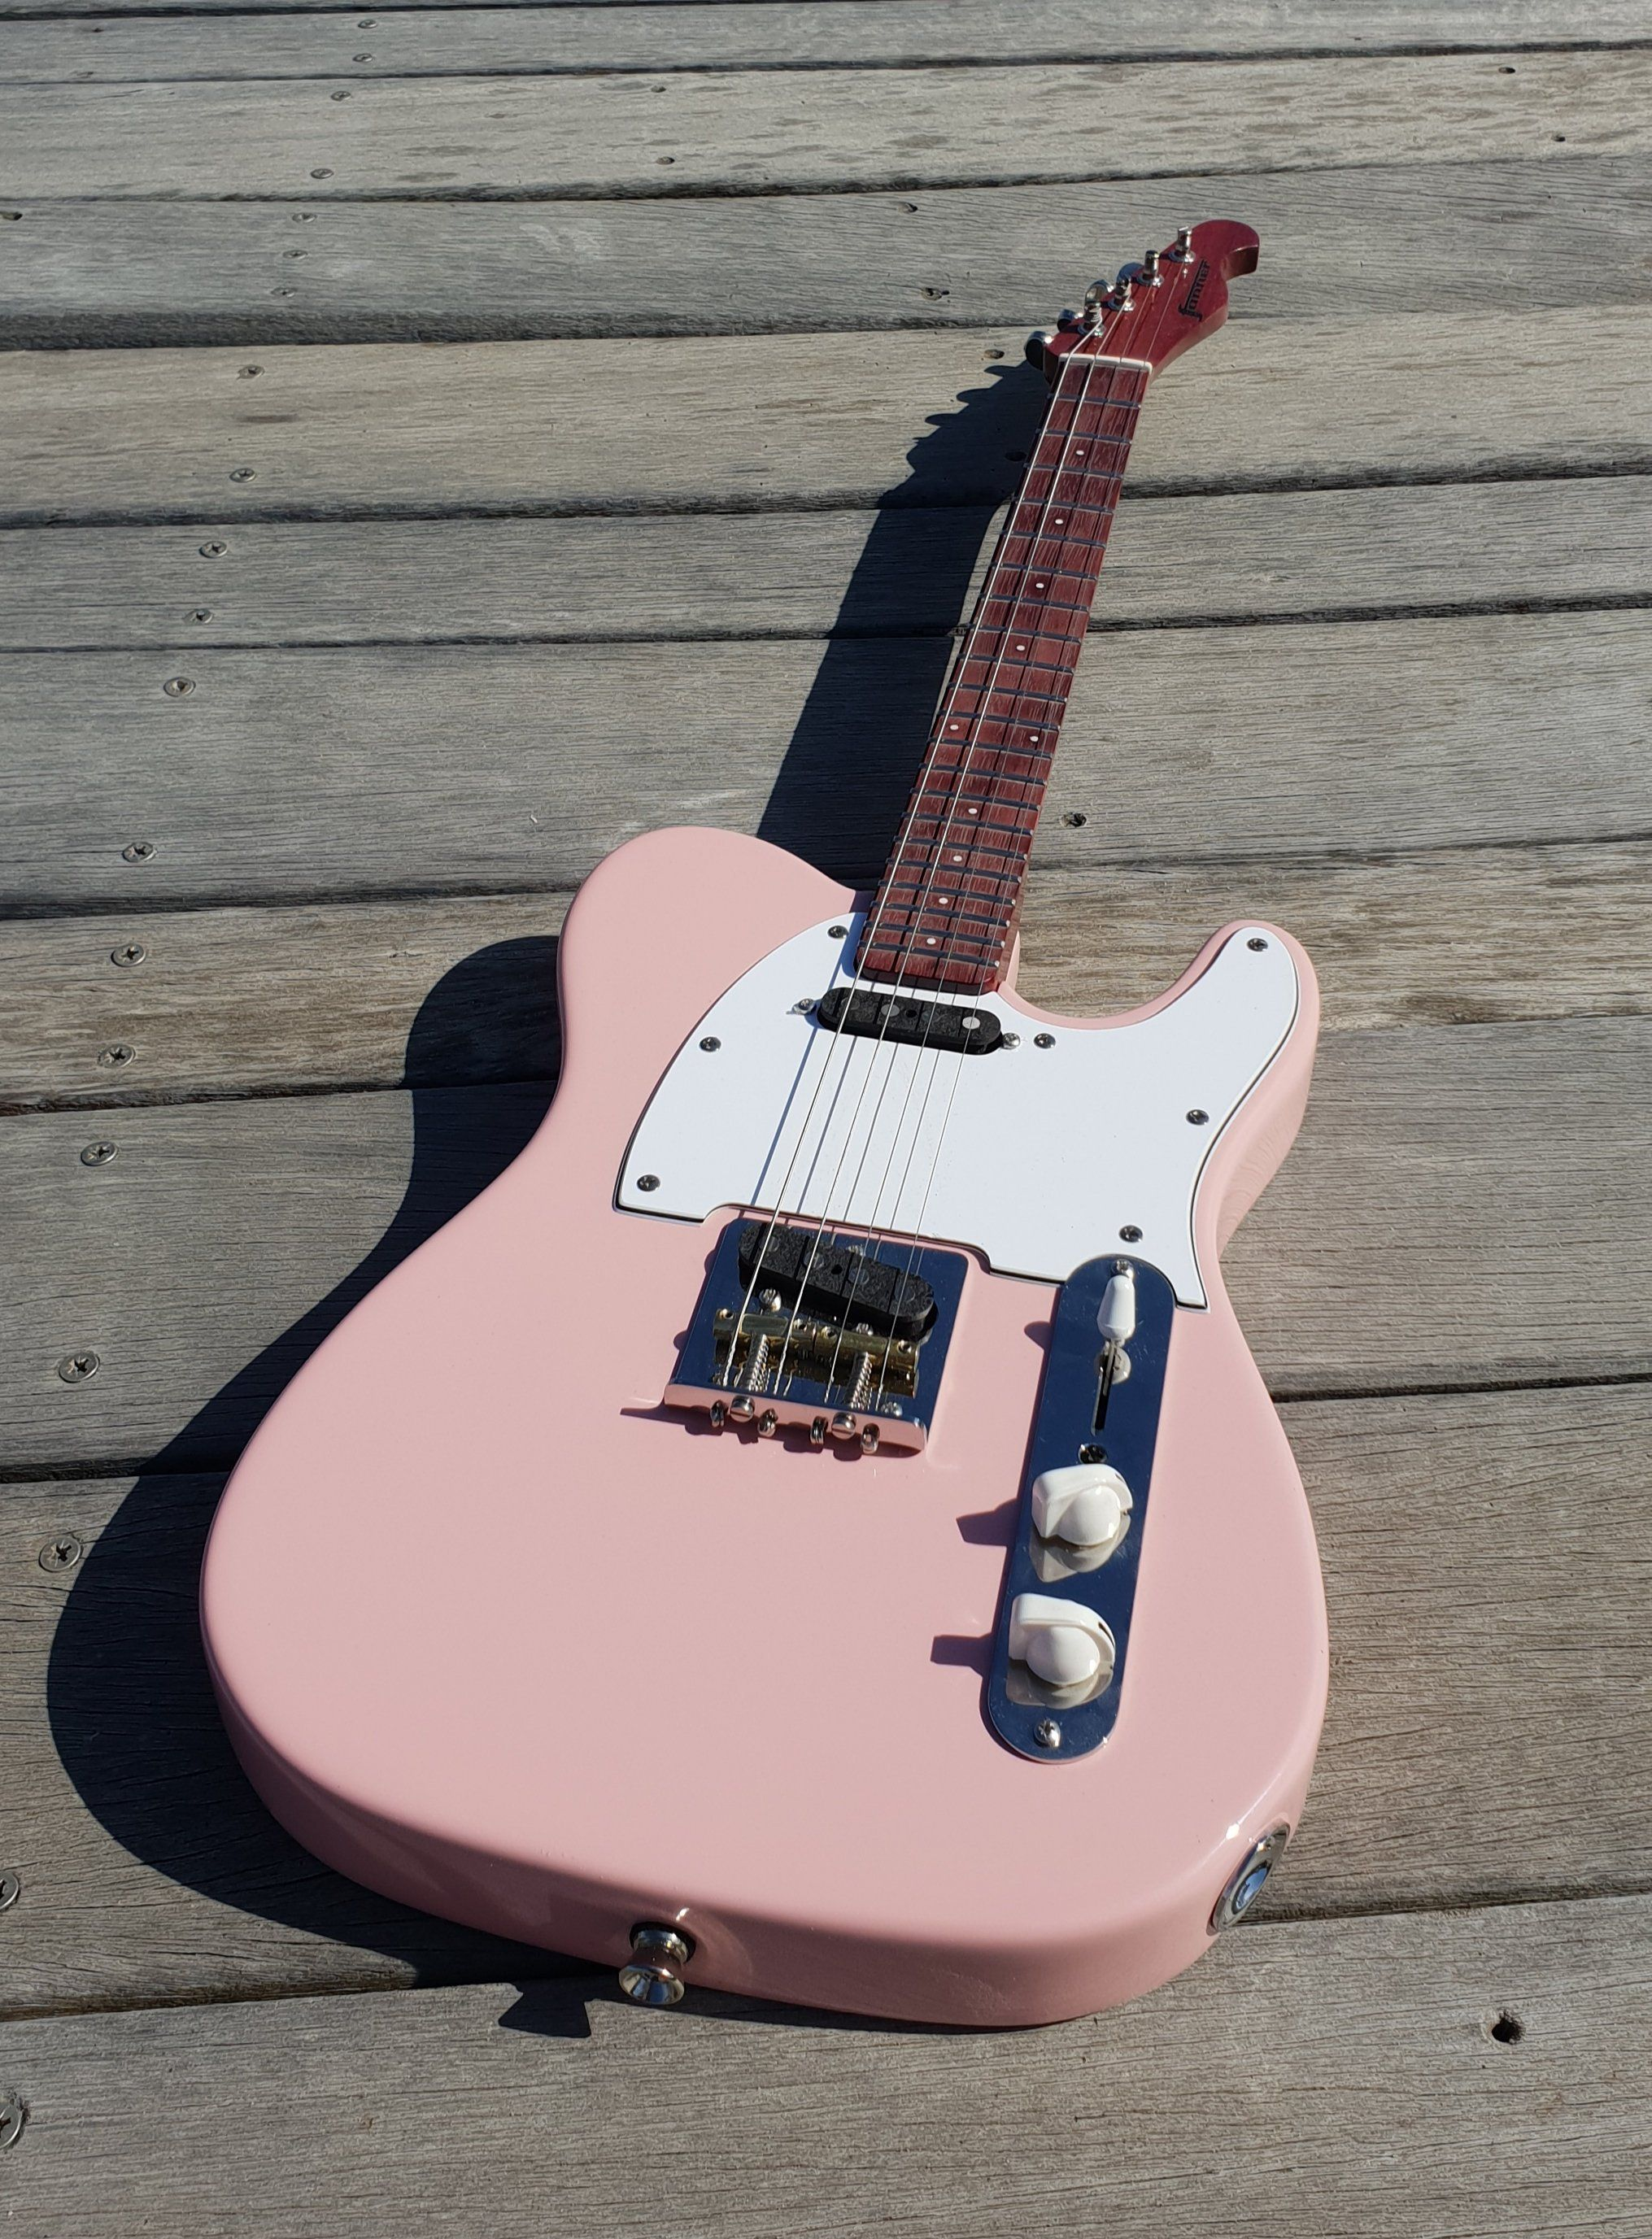 Baritone Pixelator Electric Ukulele Pink Body With Purple Heart Neck And Fretboard Gig Bag Included 19 Scale Guitar Acoustic Guitar Strings Guitar Strings